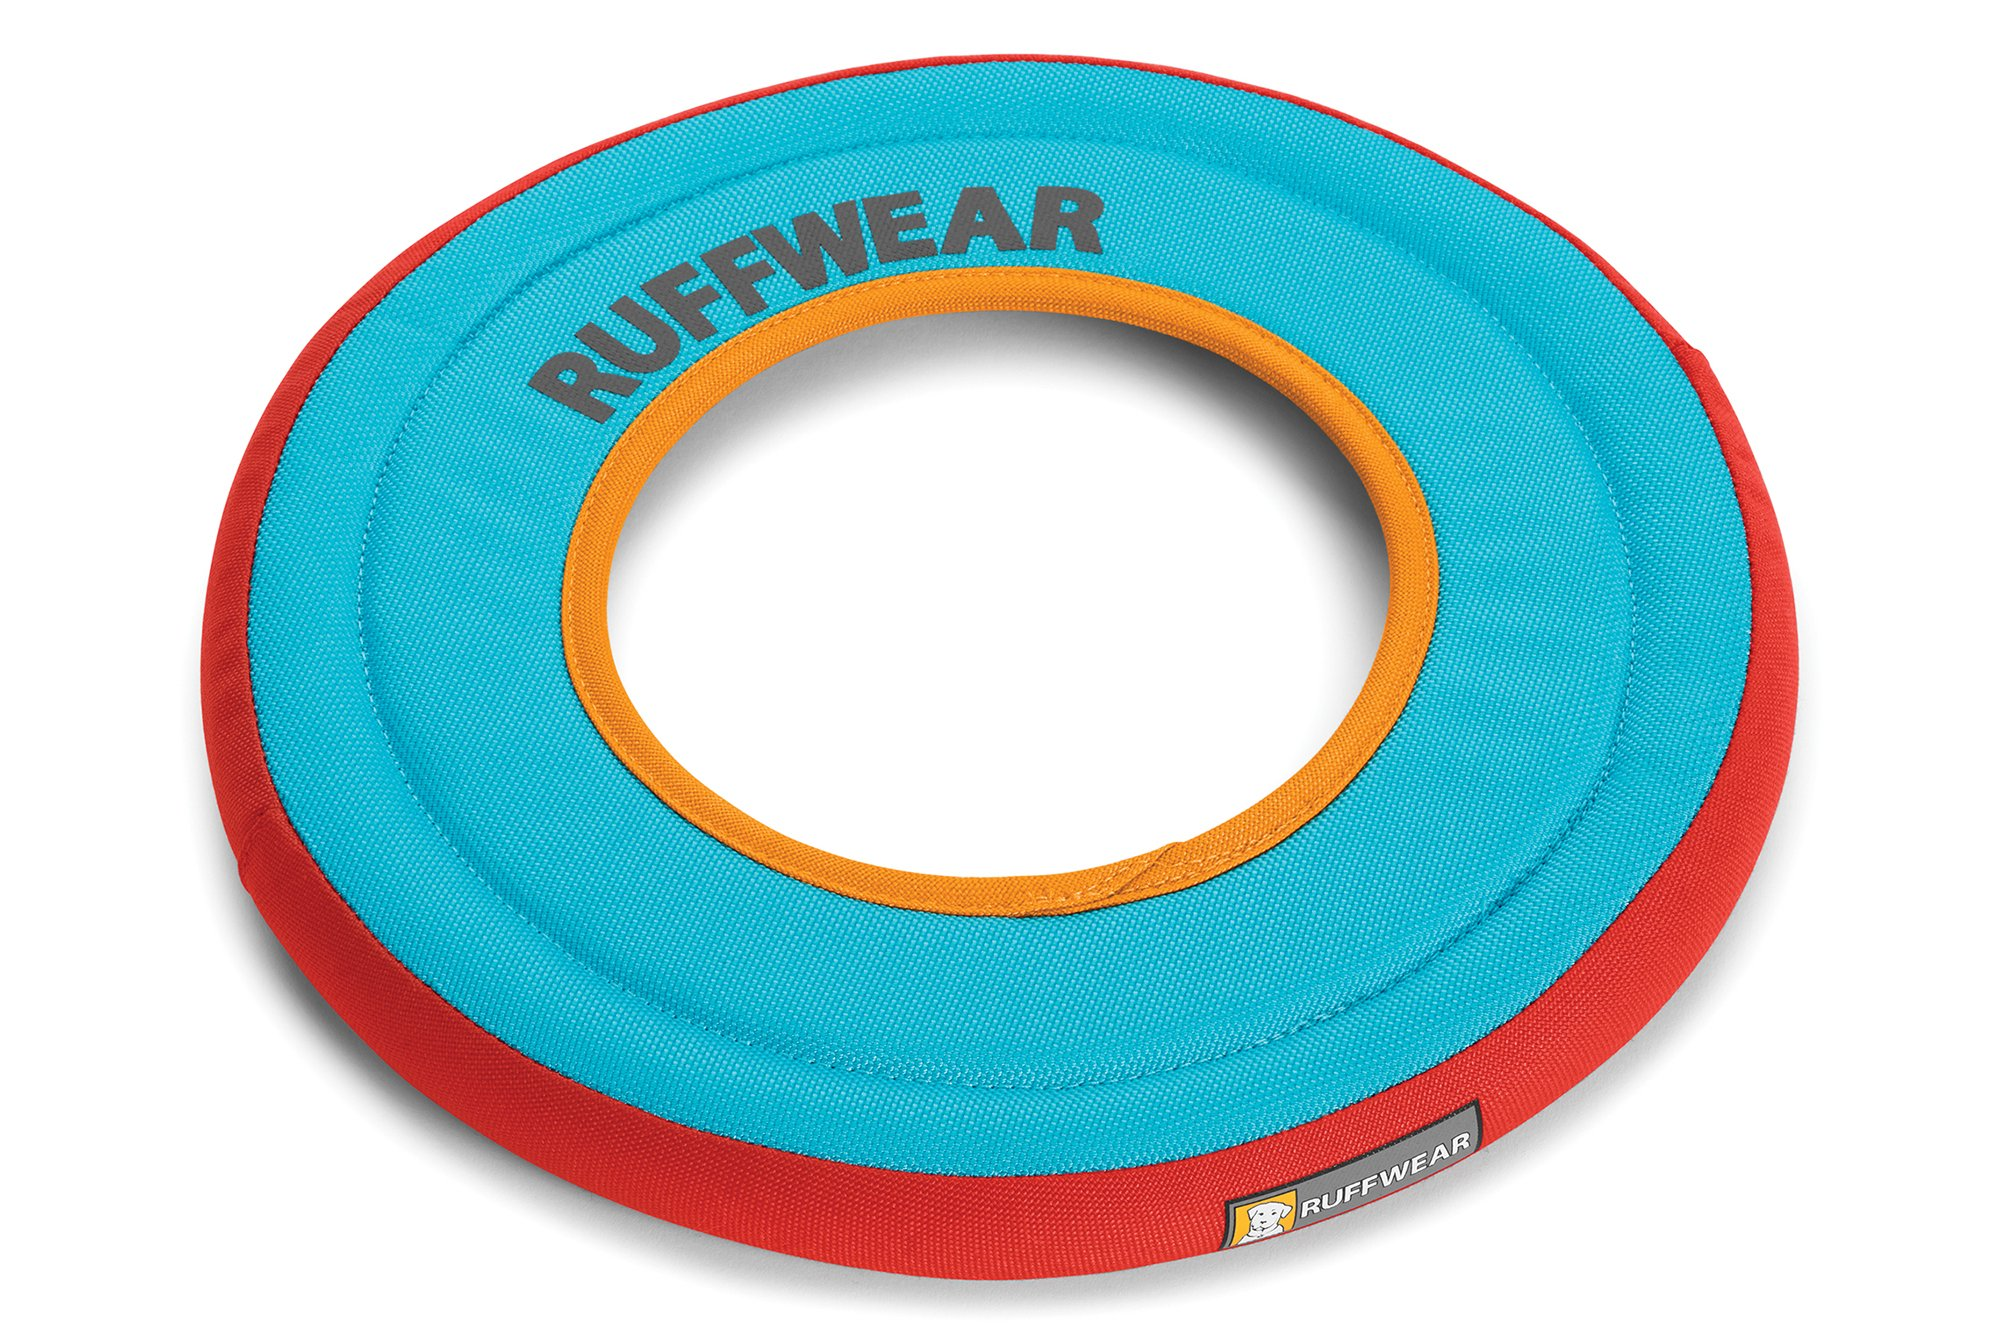 RUFFWEAR - Hydro Plane Floating Disc for Dogs, Blue Atoll (2018) by RUFFWEAR